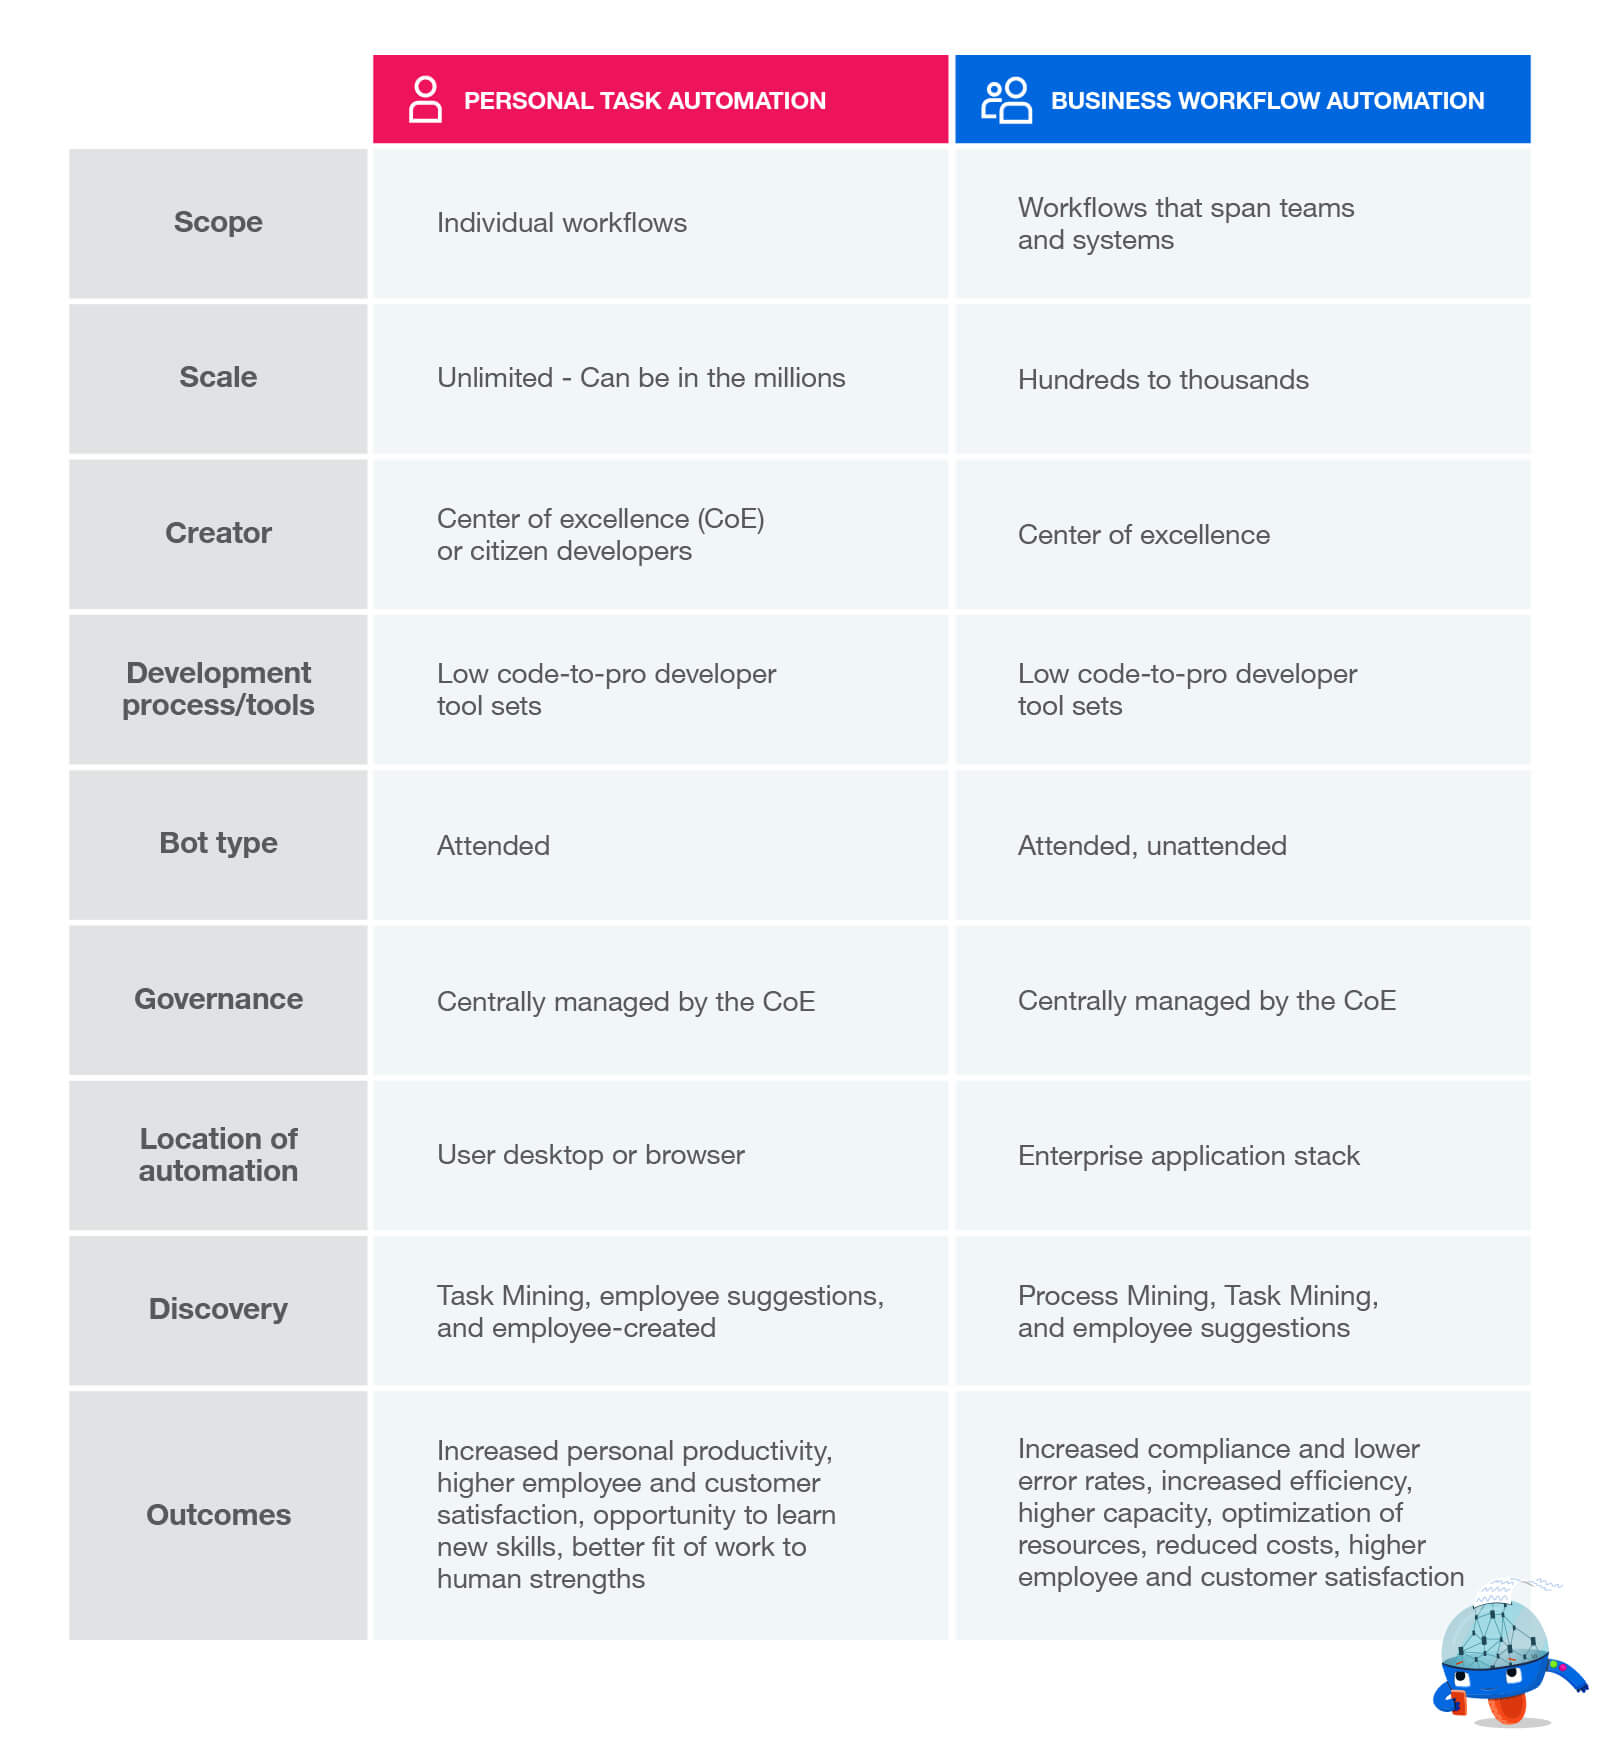 personal-automation-vs-business-workflow-automation